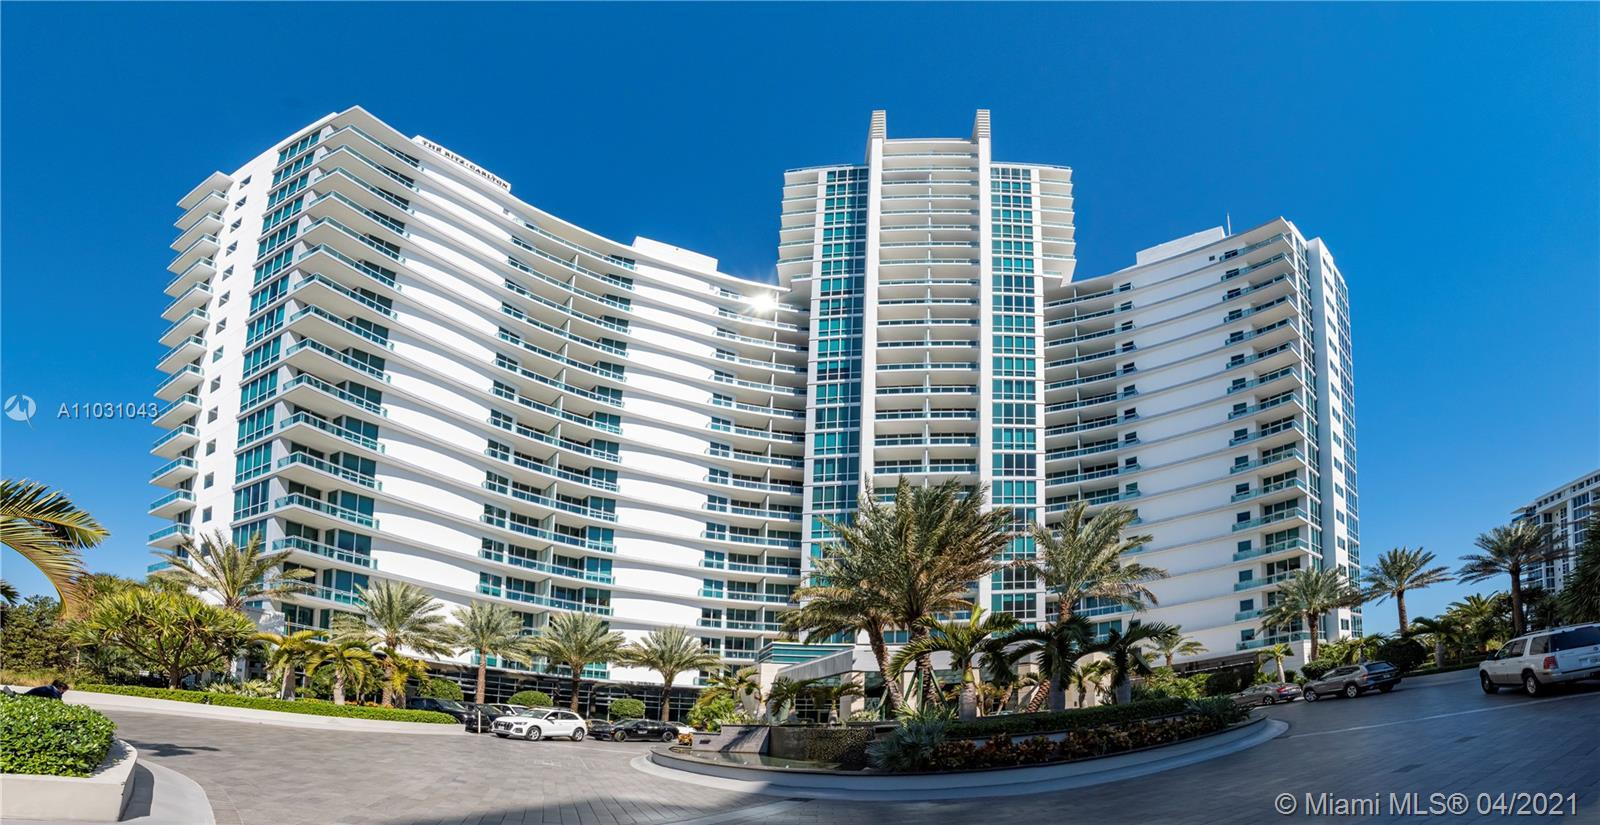 Breathtaking 1 Bedroom, 1 bath Condo-Hotel Luxury Residence. Ocean and canal panoramic views. Fully